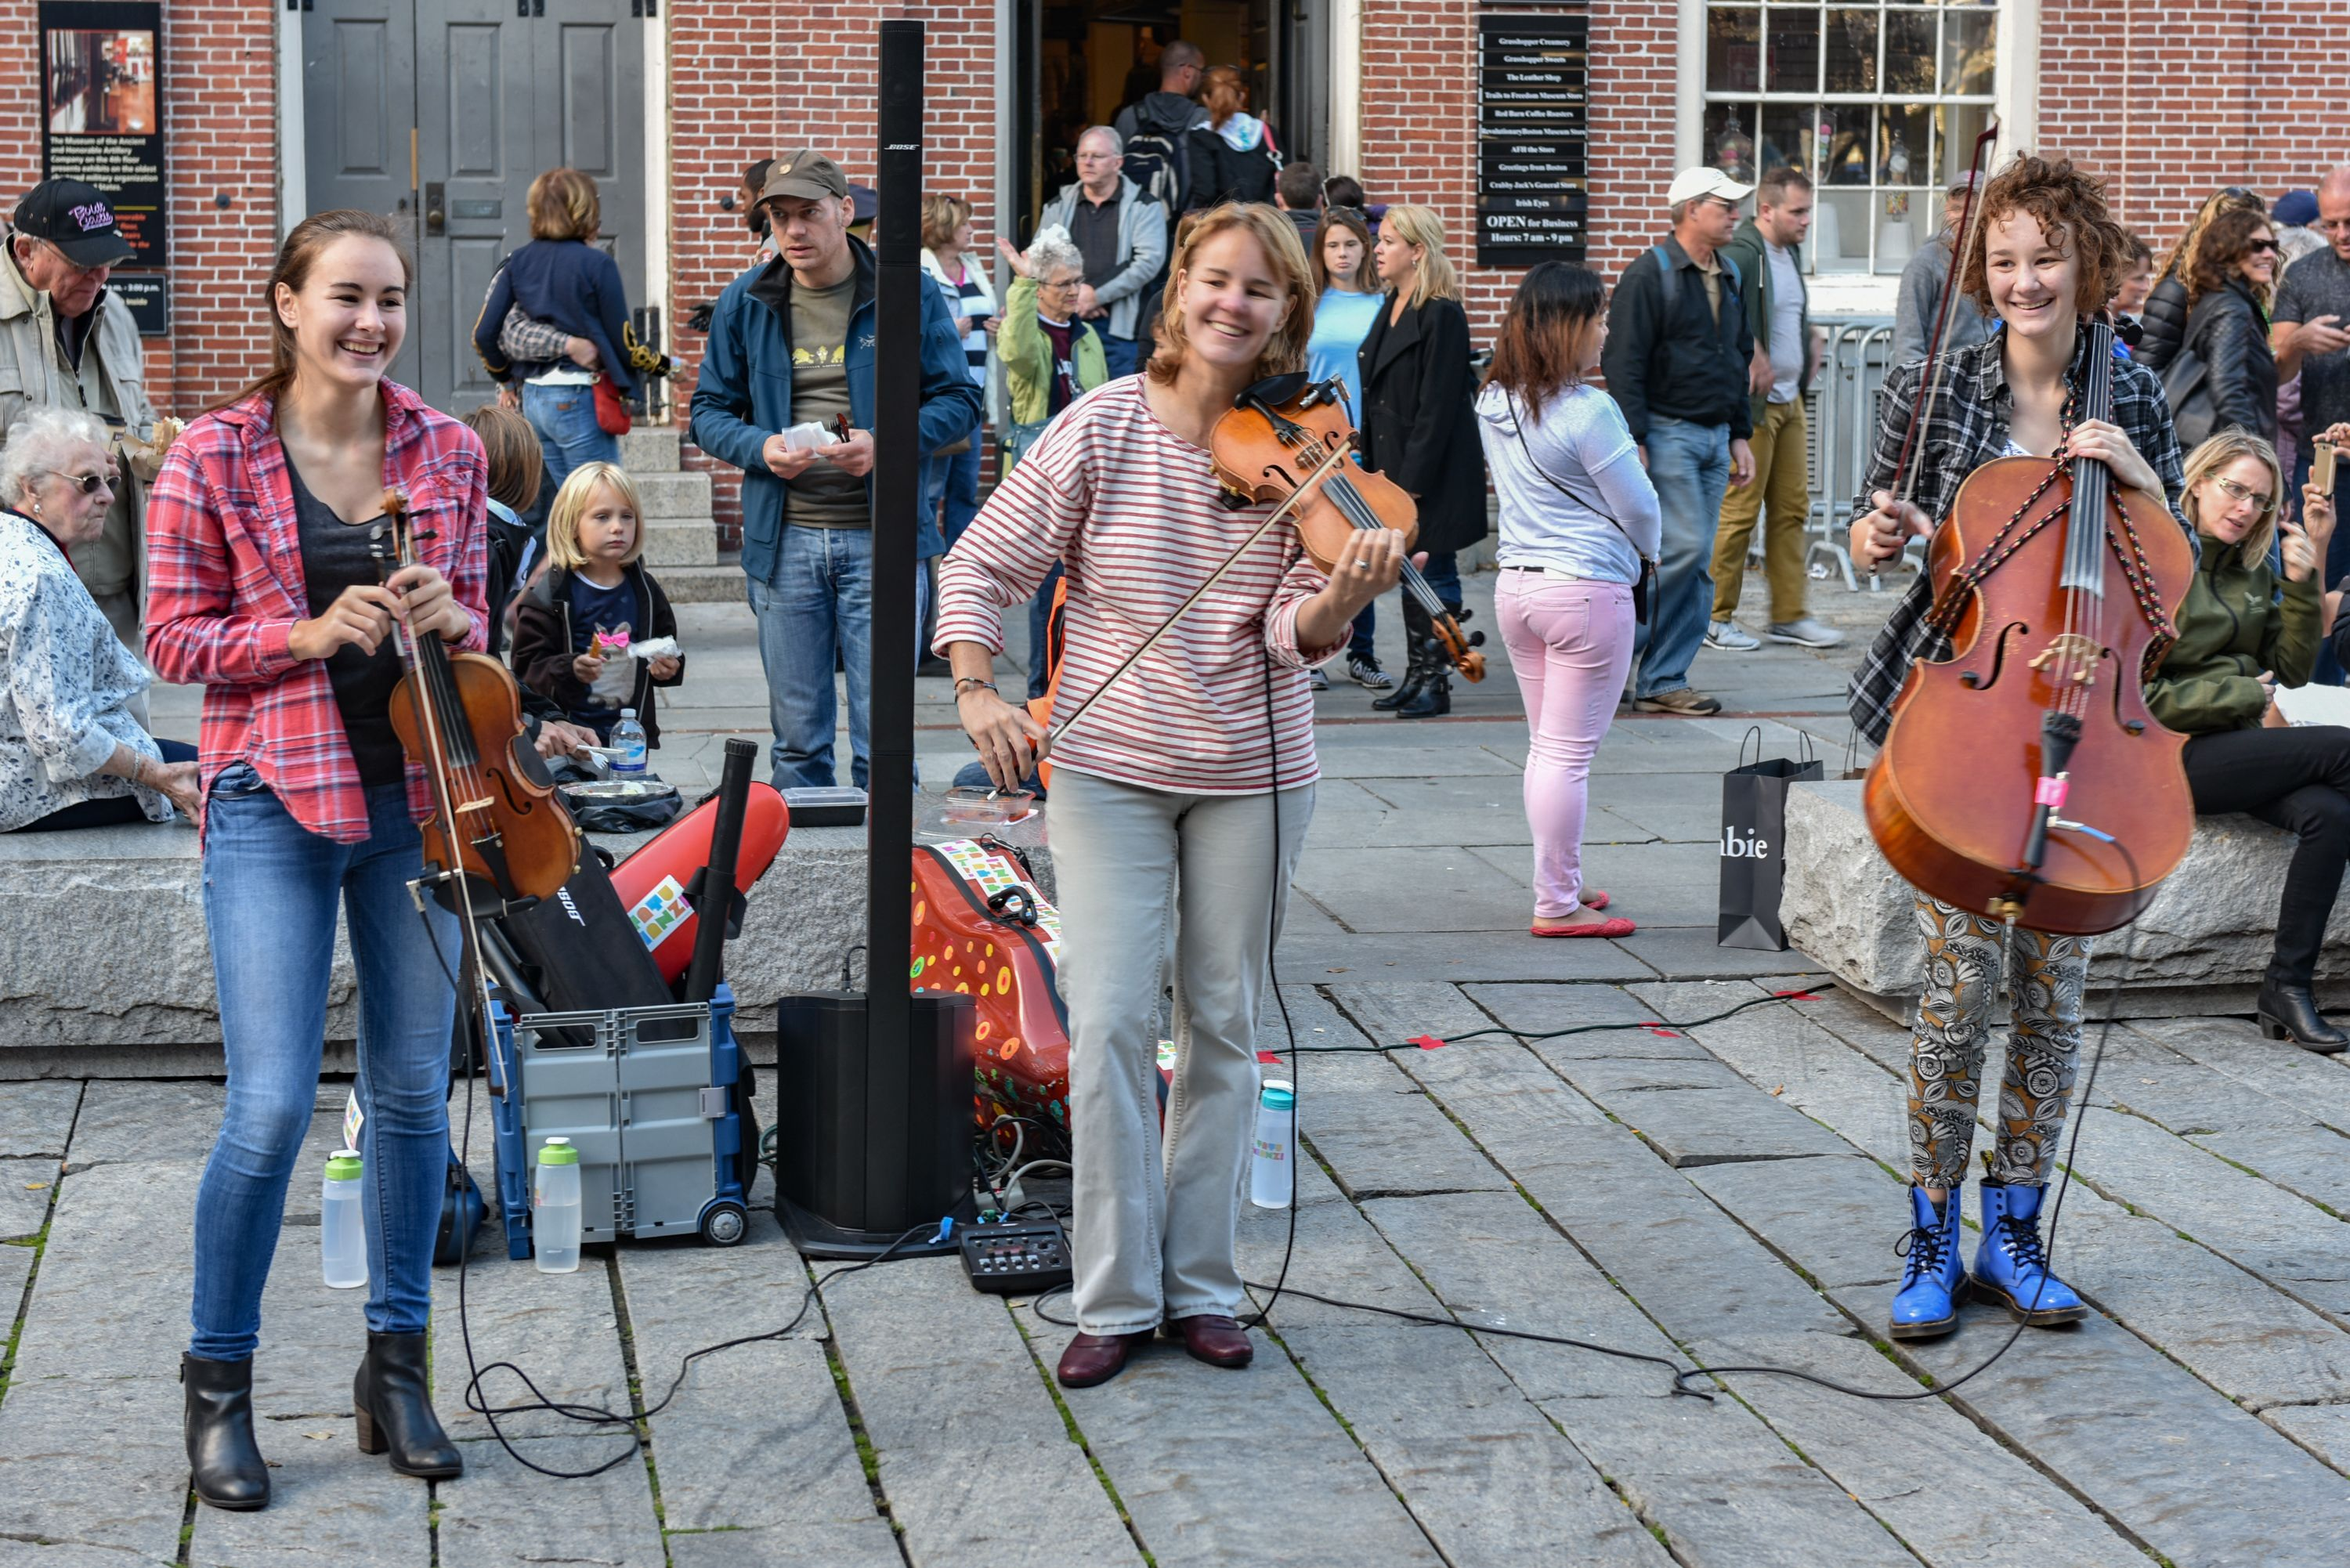 Classical street musicians like our page for a photo every